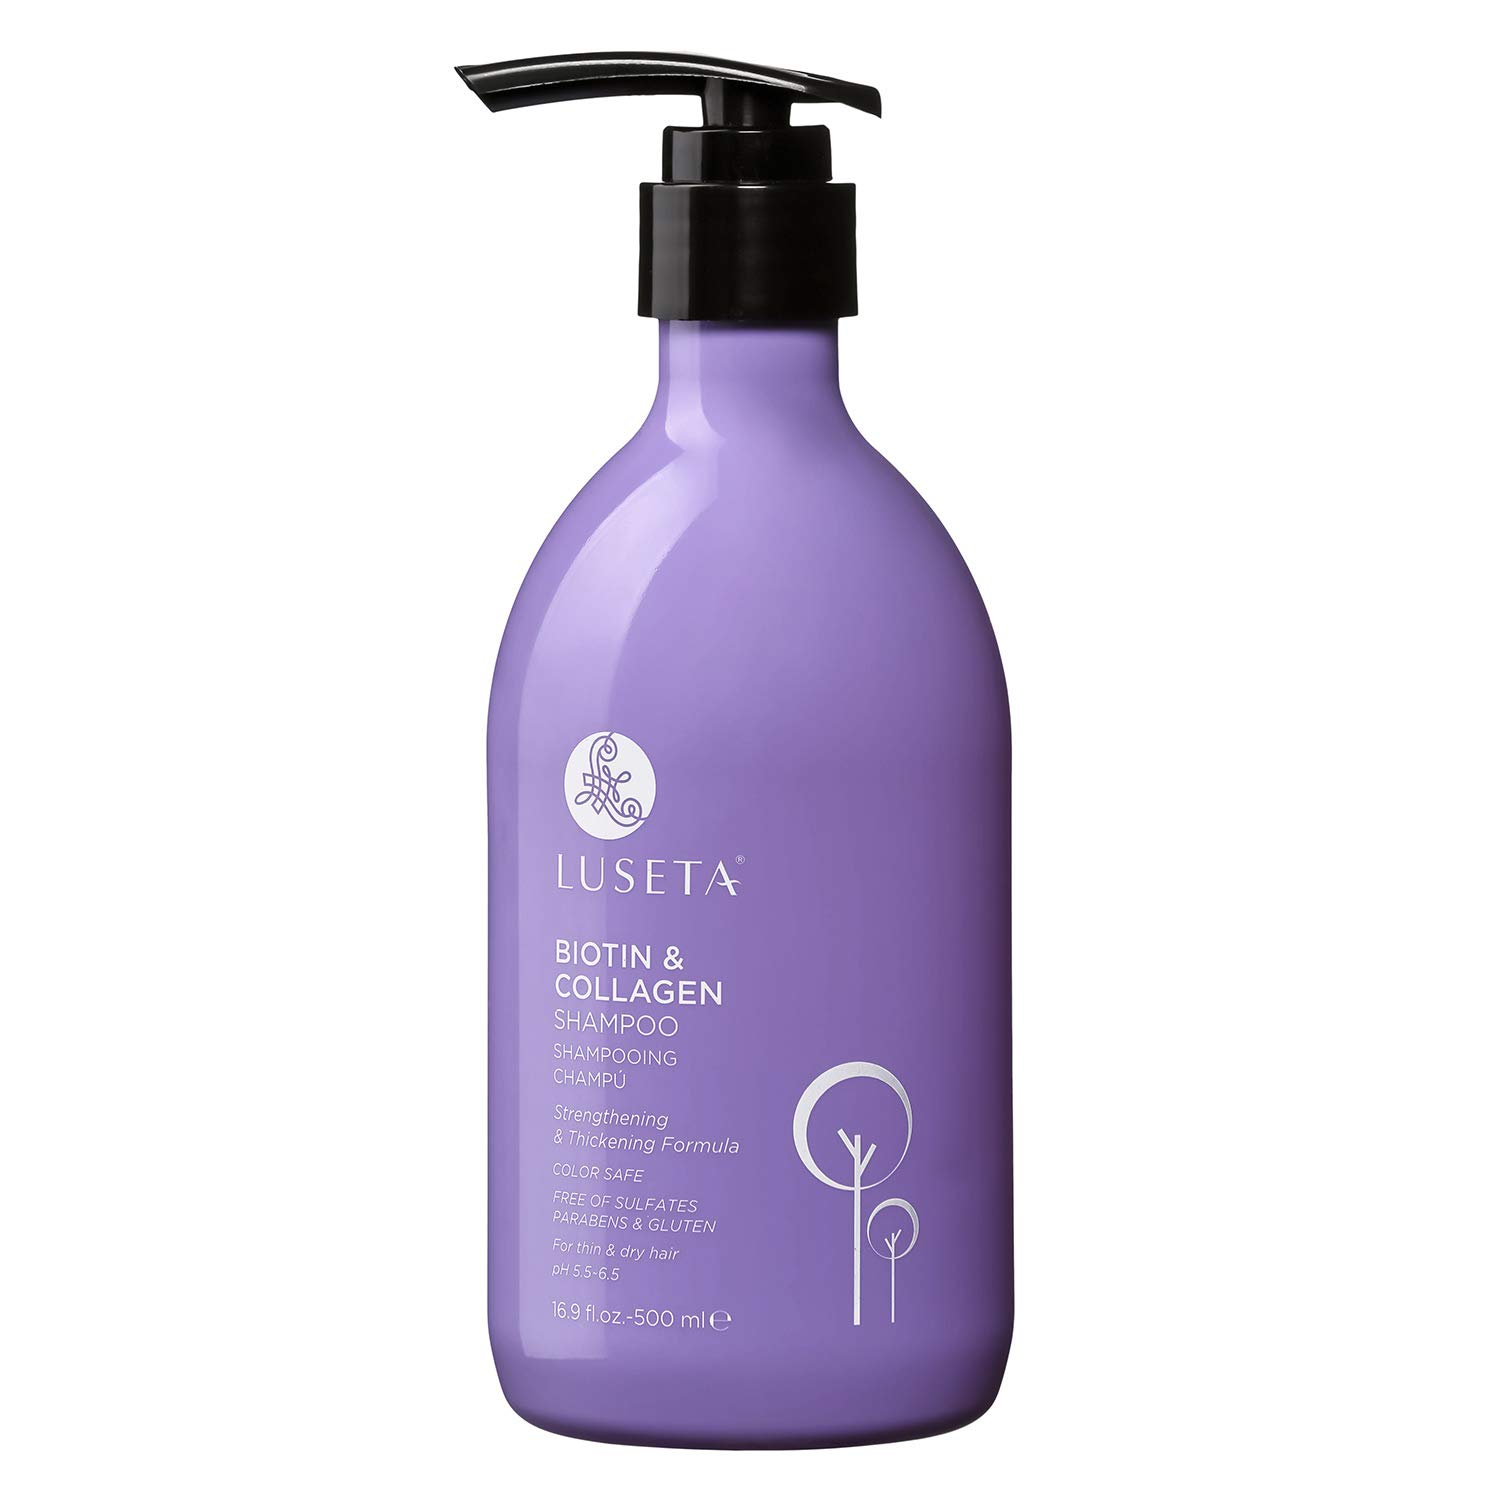 Luseta Biotin & Collagen Shampoo Thicking Shampoo for Hair Loss & Fast Hair Growth, Sulfate & Paraben Free, Keratin & Color Safe, 500ml by L LUSETA